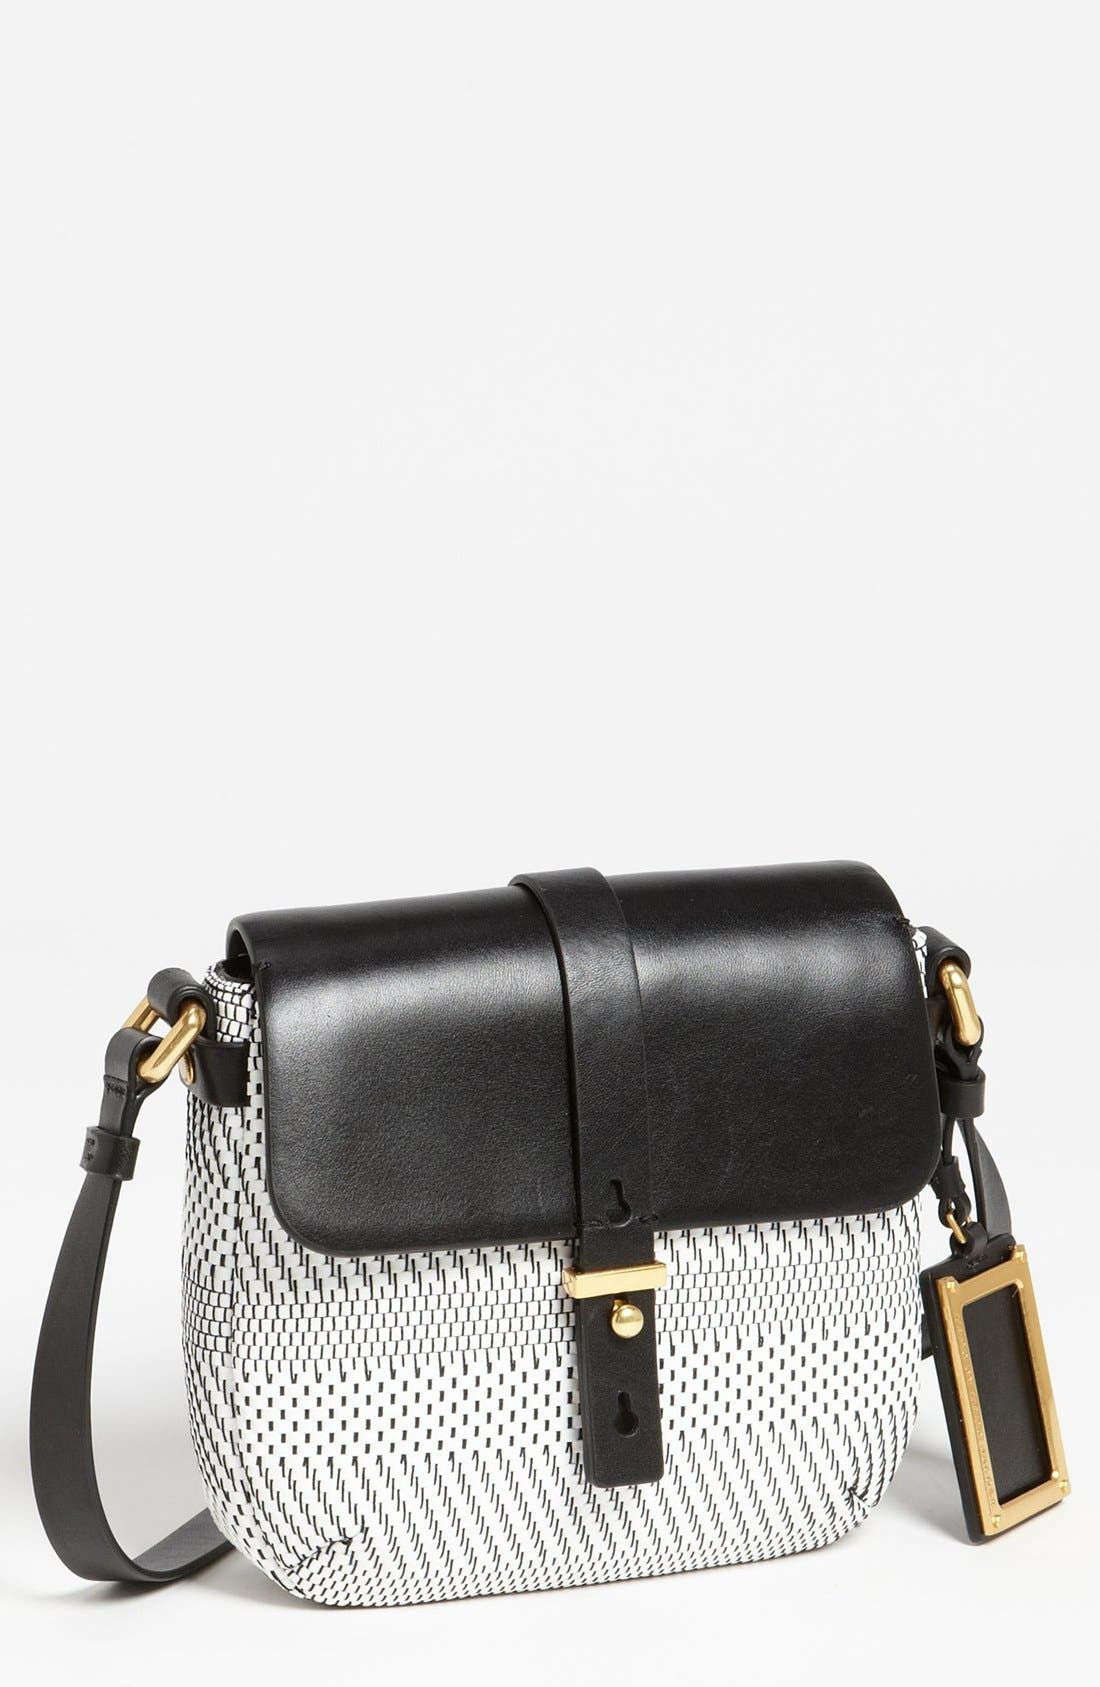 Main Image - MARC BY MARC JACOBS 'Werdie Weavy - Isabella' Faux Leather Crossbody Bag